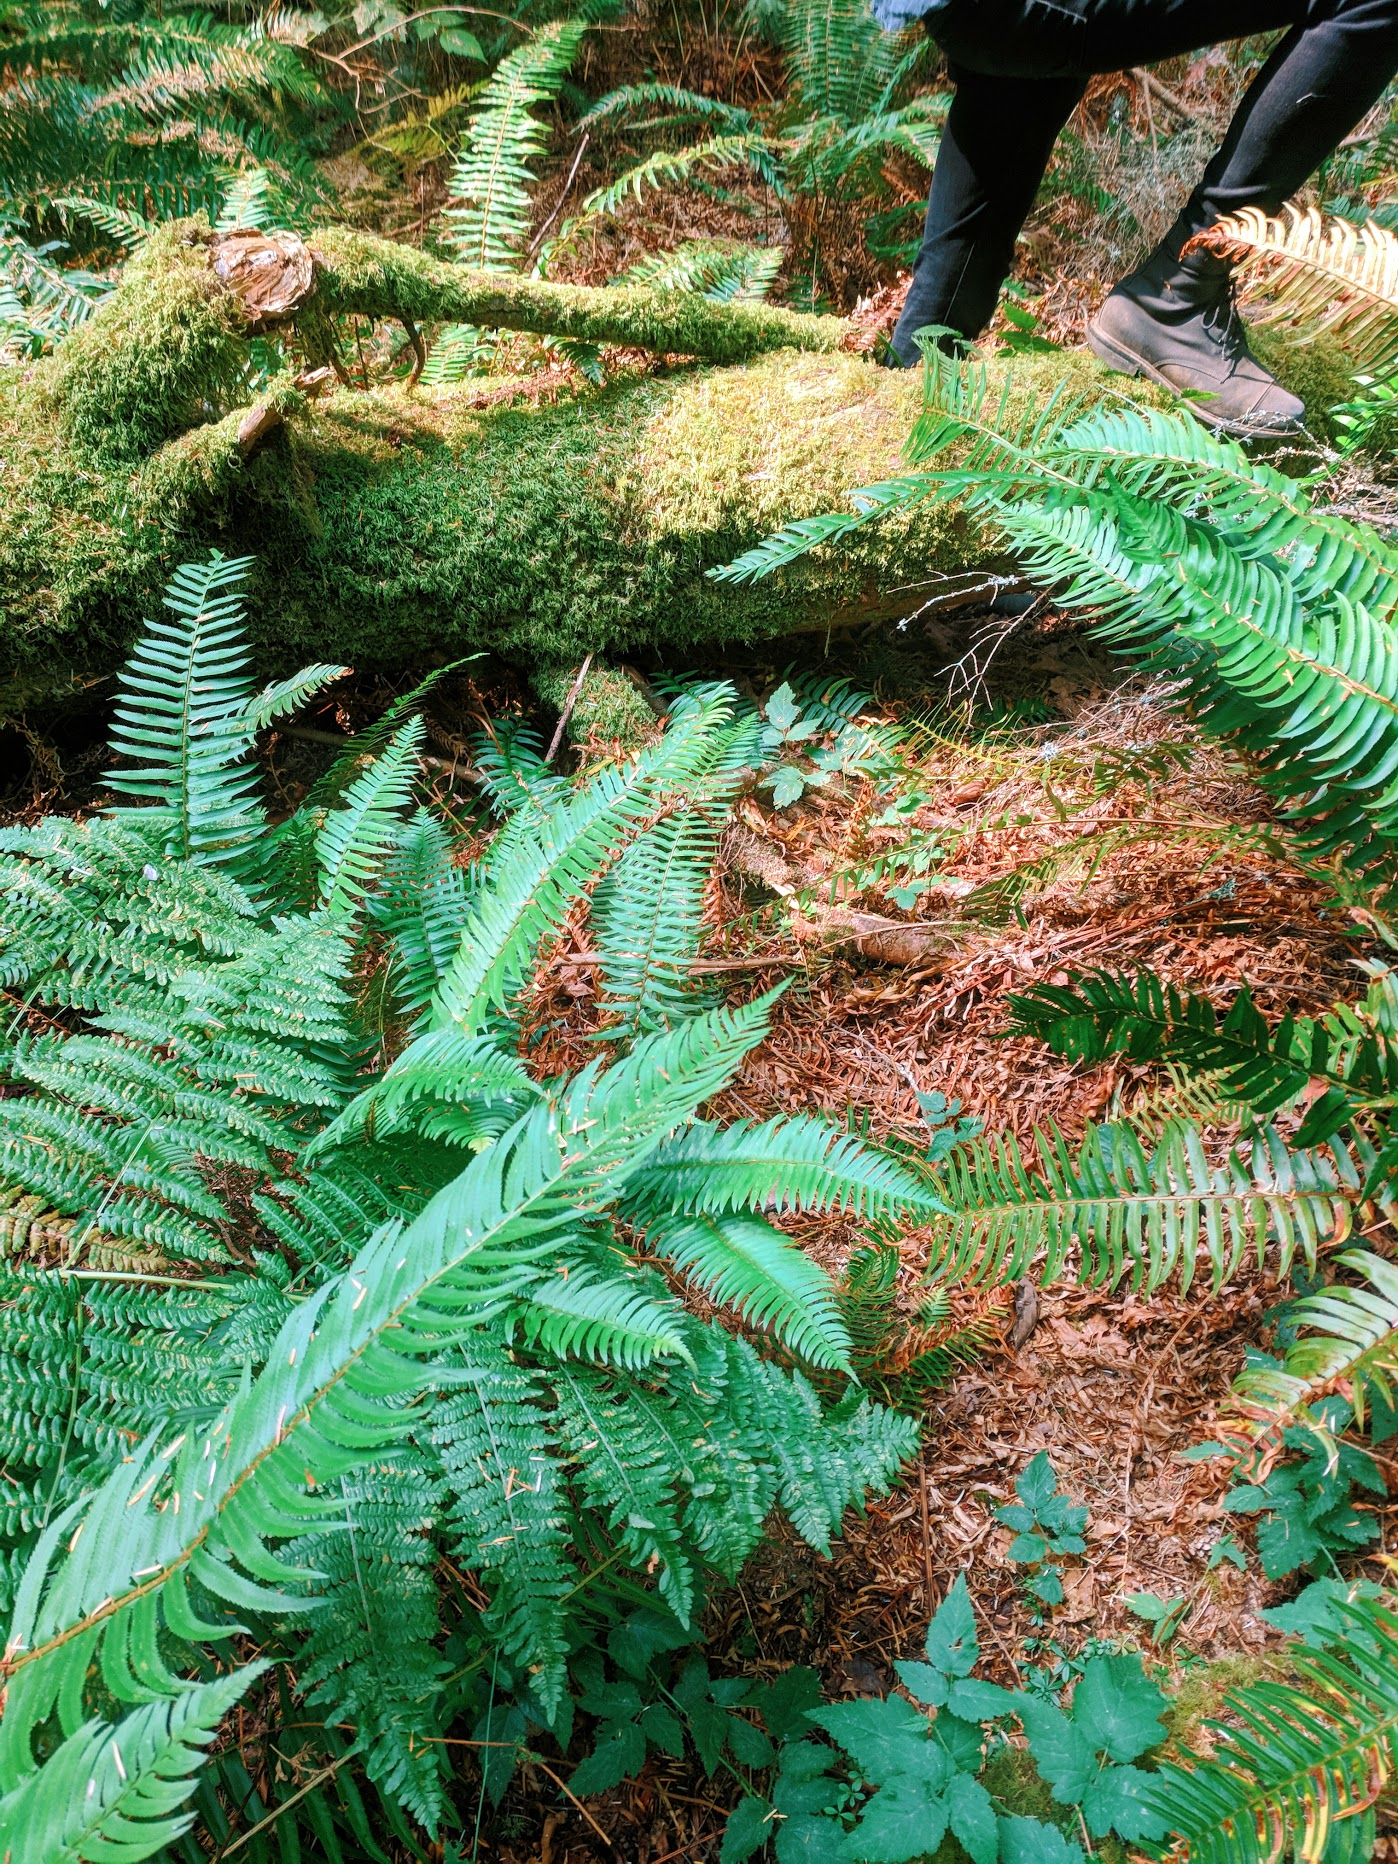 sword ferns and mossy logs